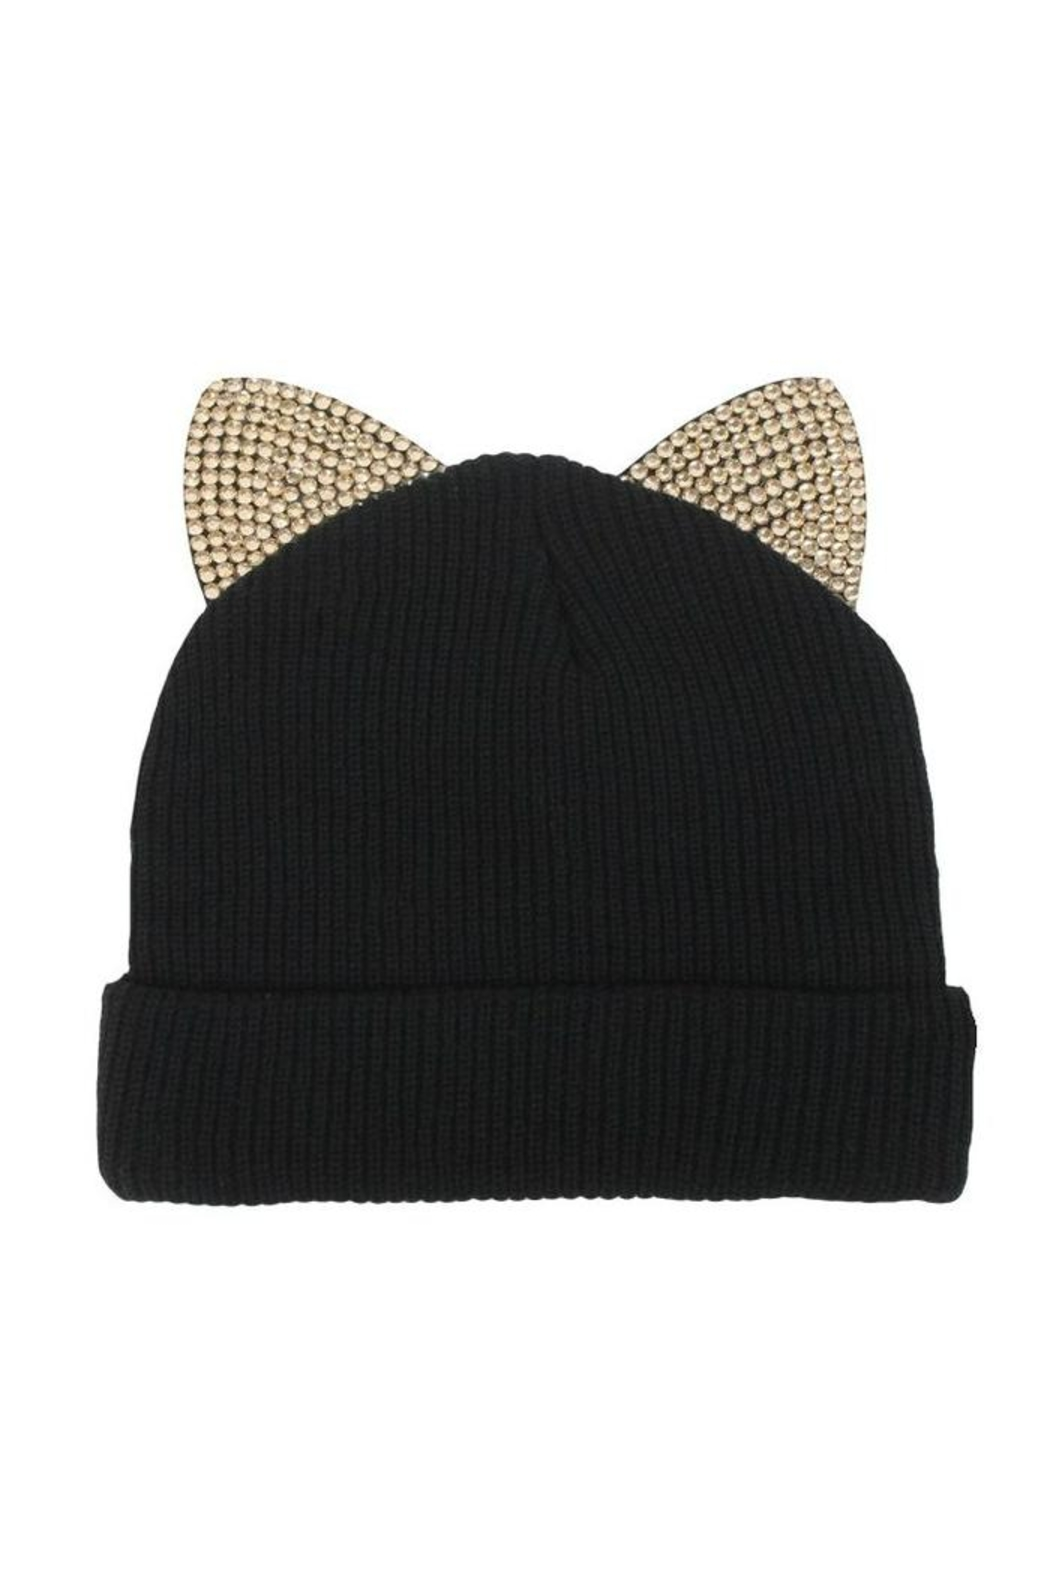 david and young Knit Cat Beanie - Main Image